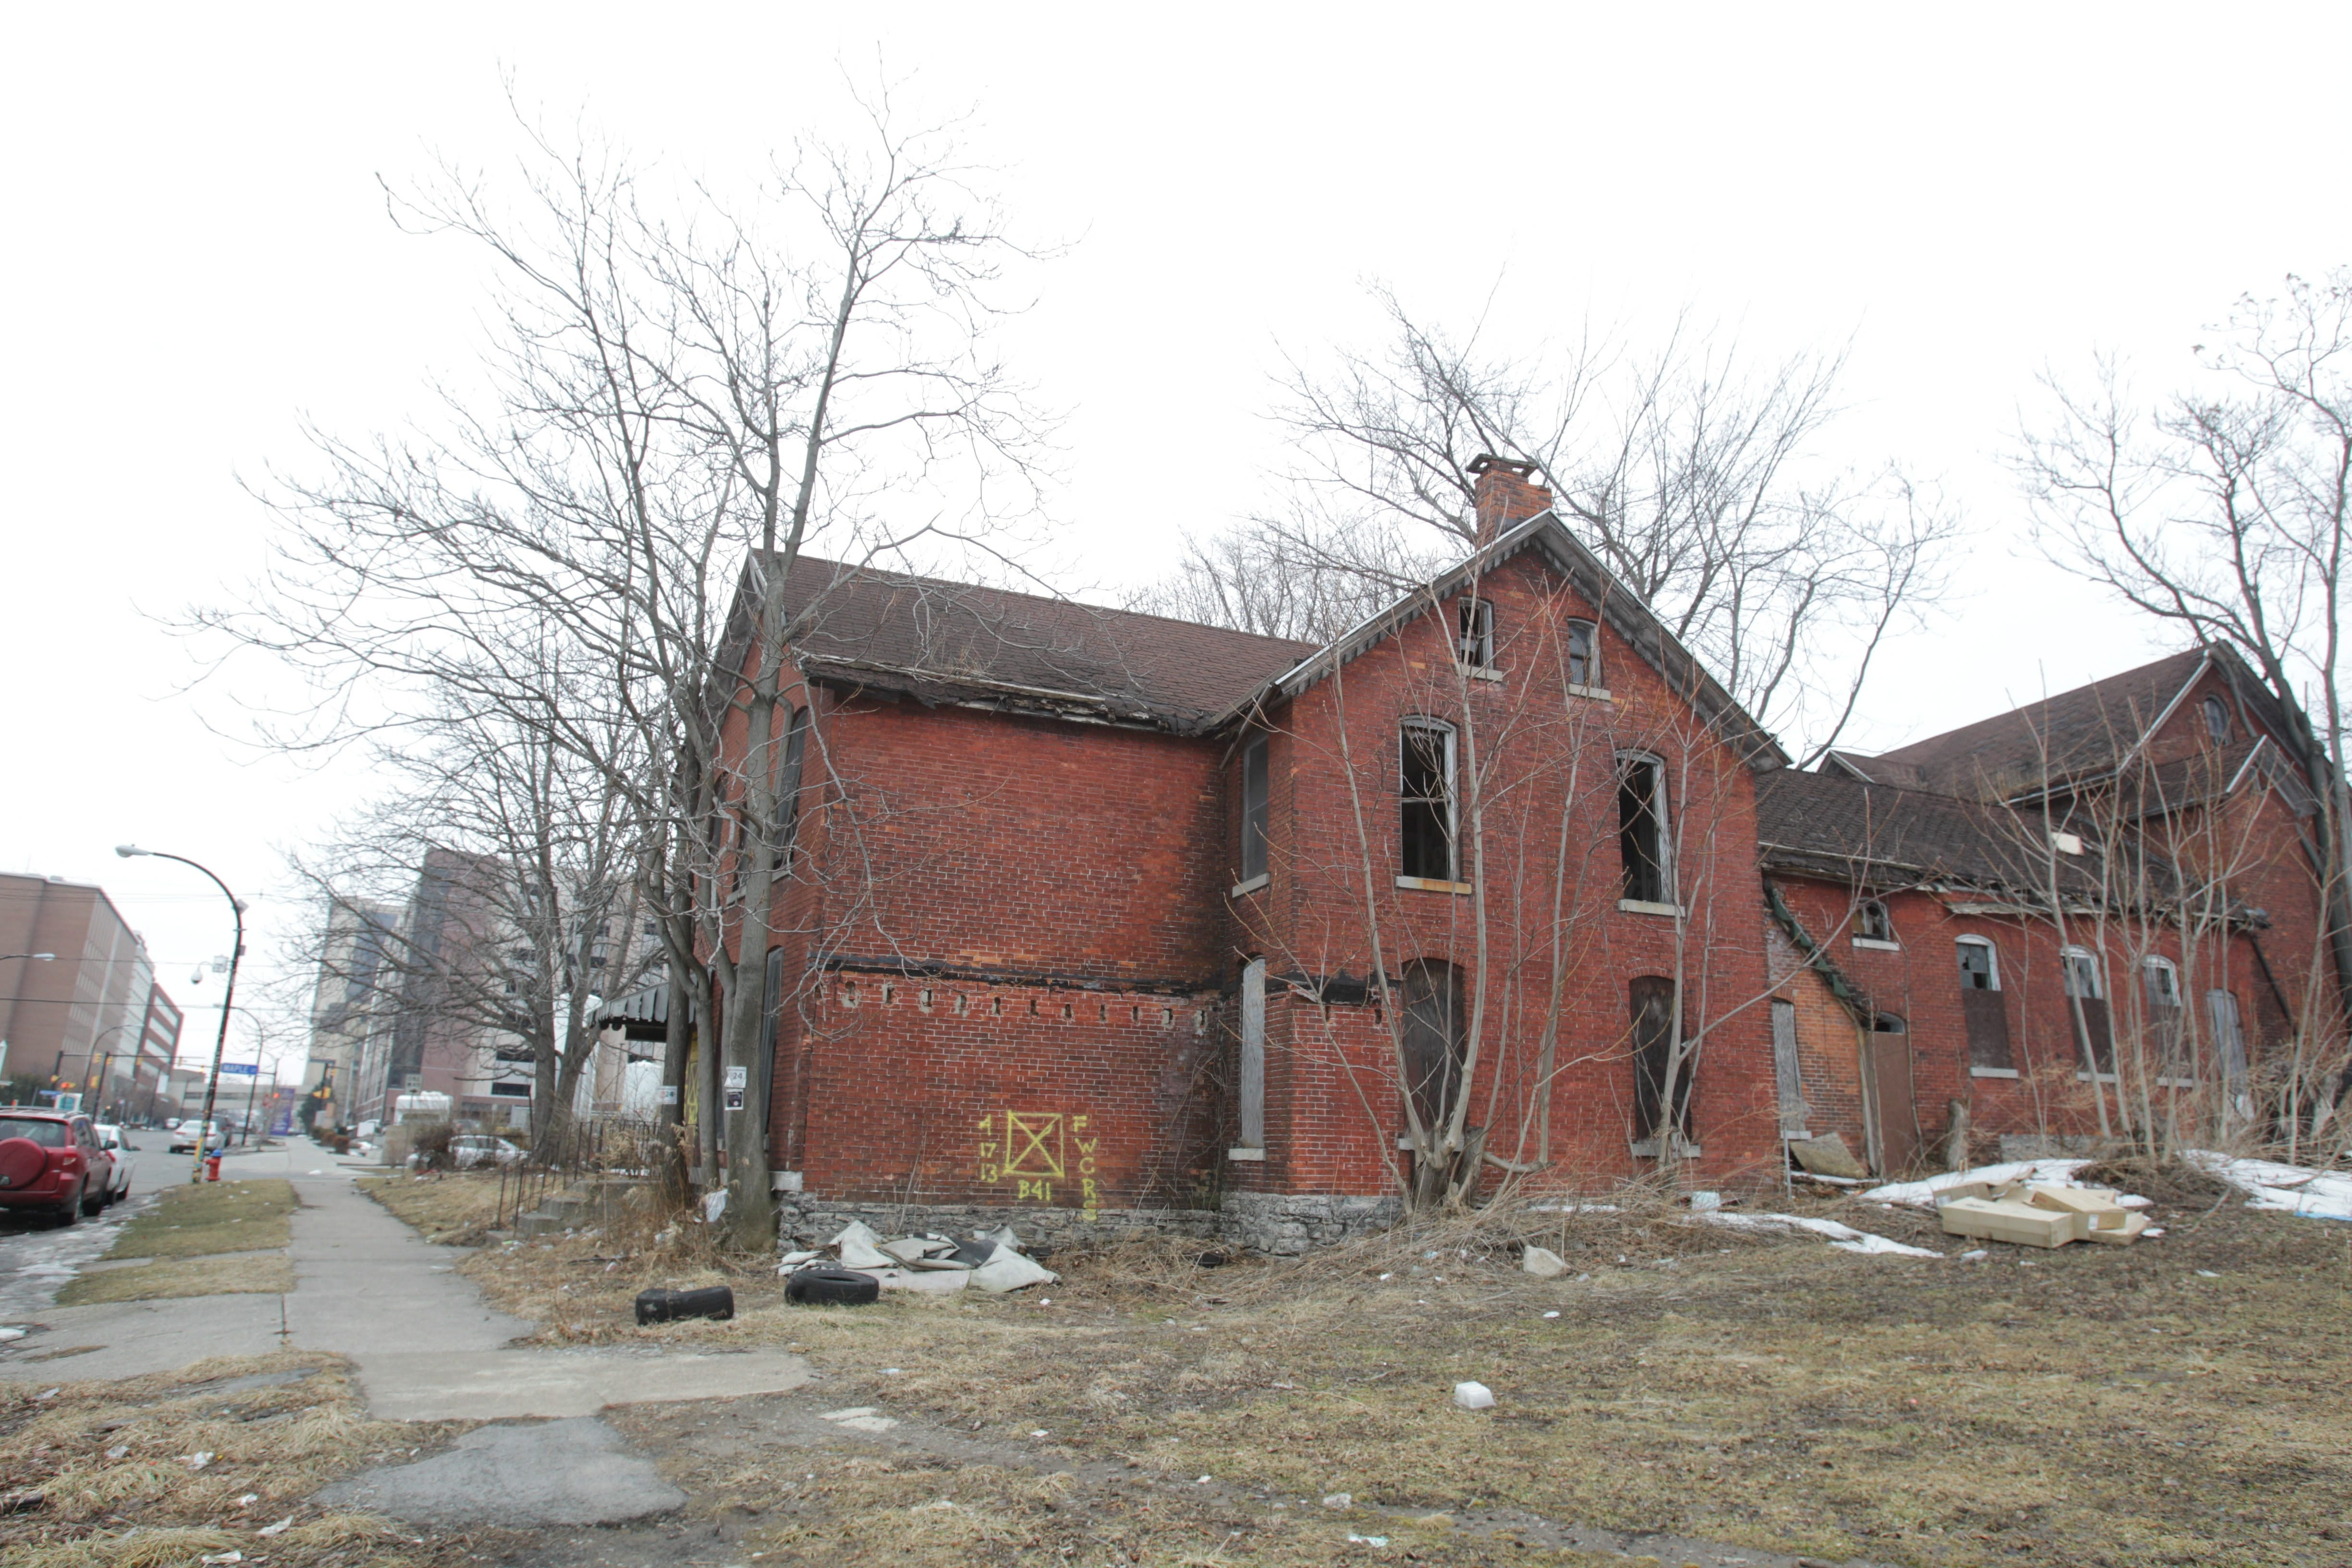 According to plans filed with the city, this structure at 190 High St., which dates back to 1865, will be torn down and a grocery will be built in its place. The location is one block away from Roswell Park Cancer Institute and Buffalo General Medical Center, and around the corner from the High Pointe on Michigan complex.